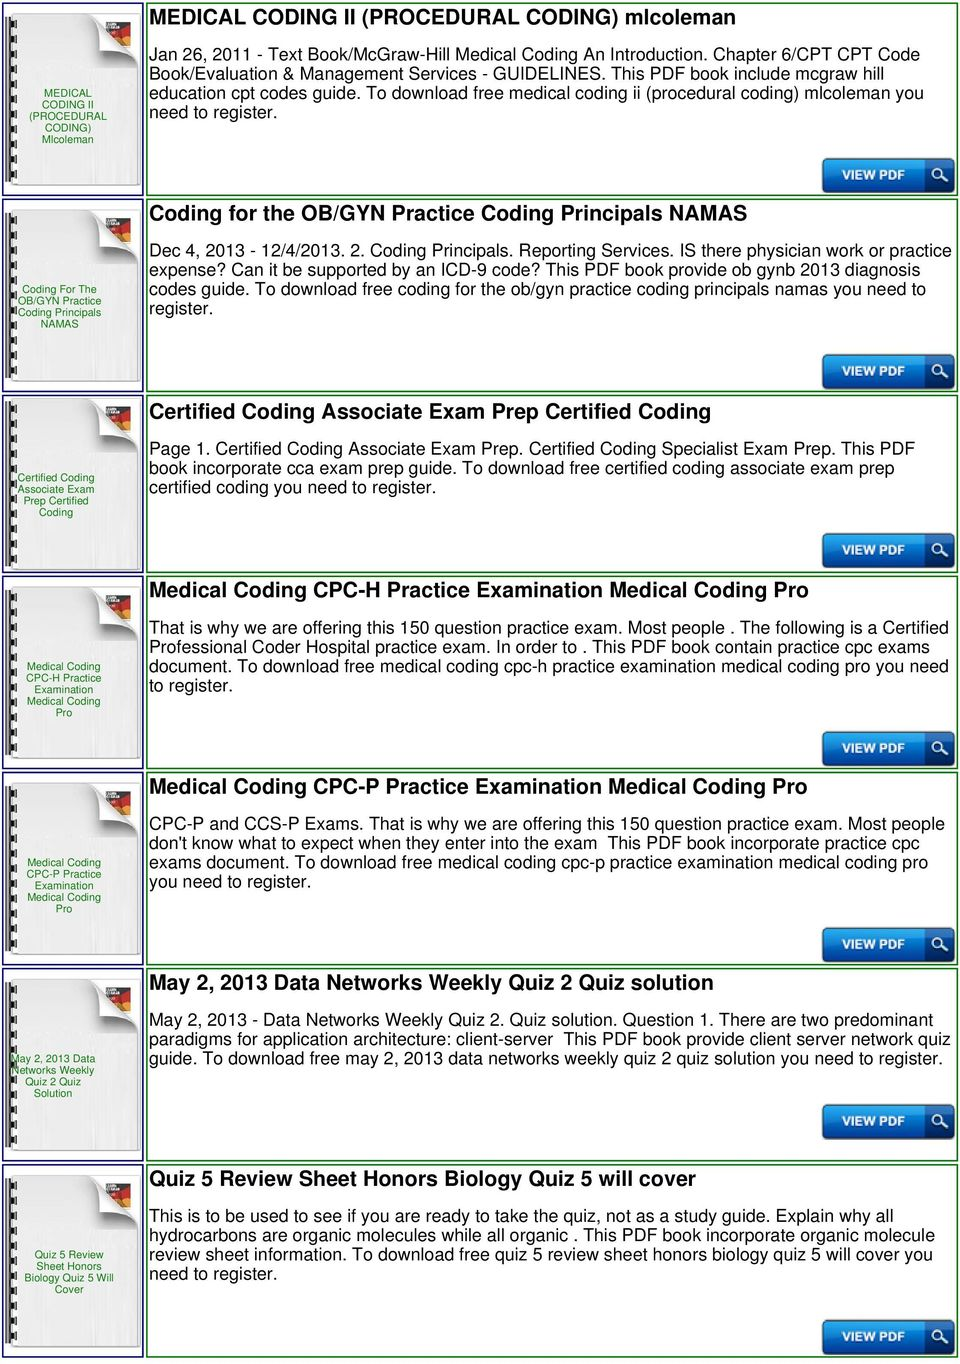 Worksheets Medical Coding Practice Worksheets adl coding for cnas quiz pdf to download free medical ii procedural mlcoleman you need for